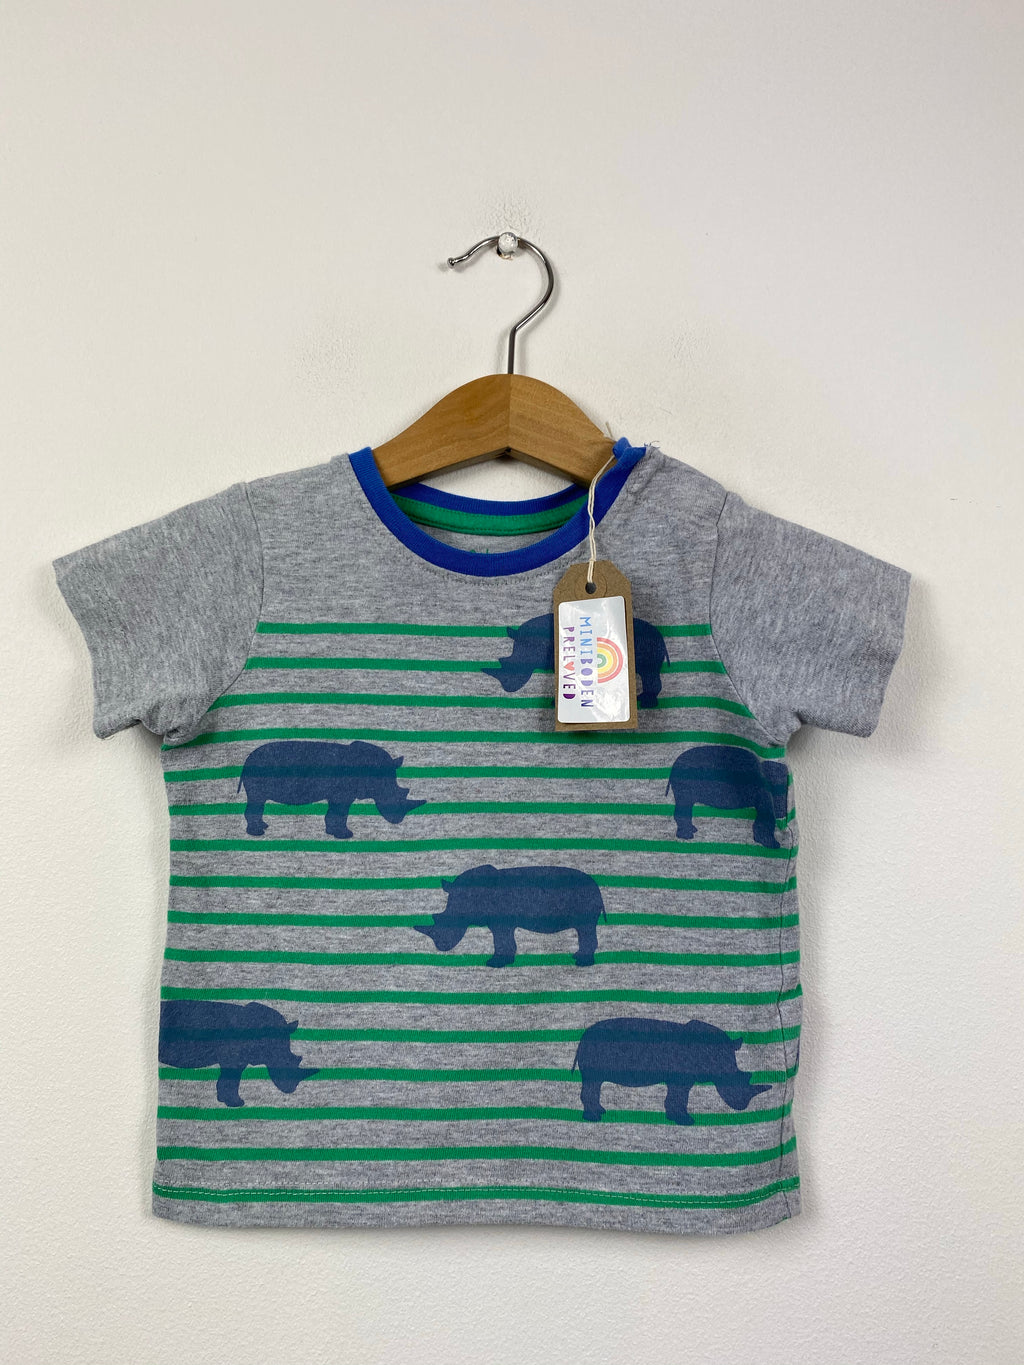 Stripy Grey Rhino Patterned Top (6-12 Months)